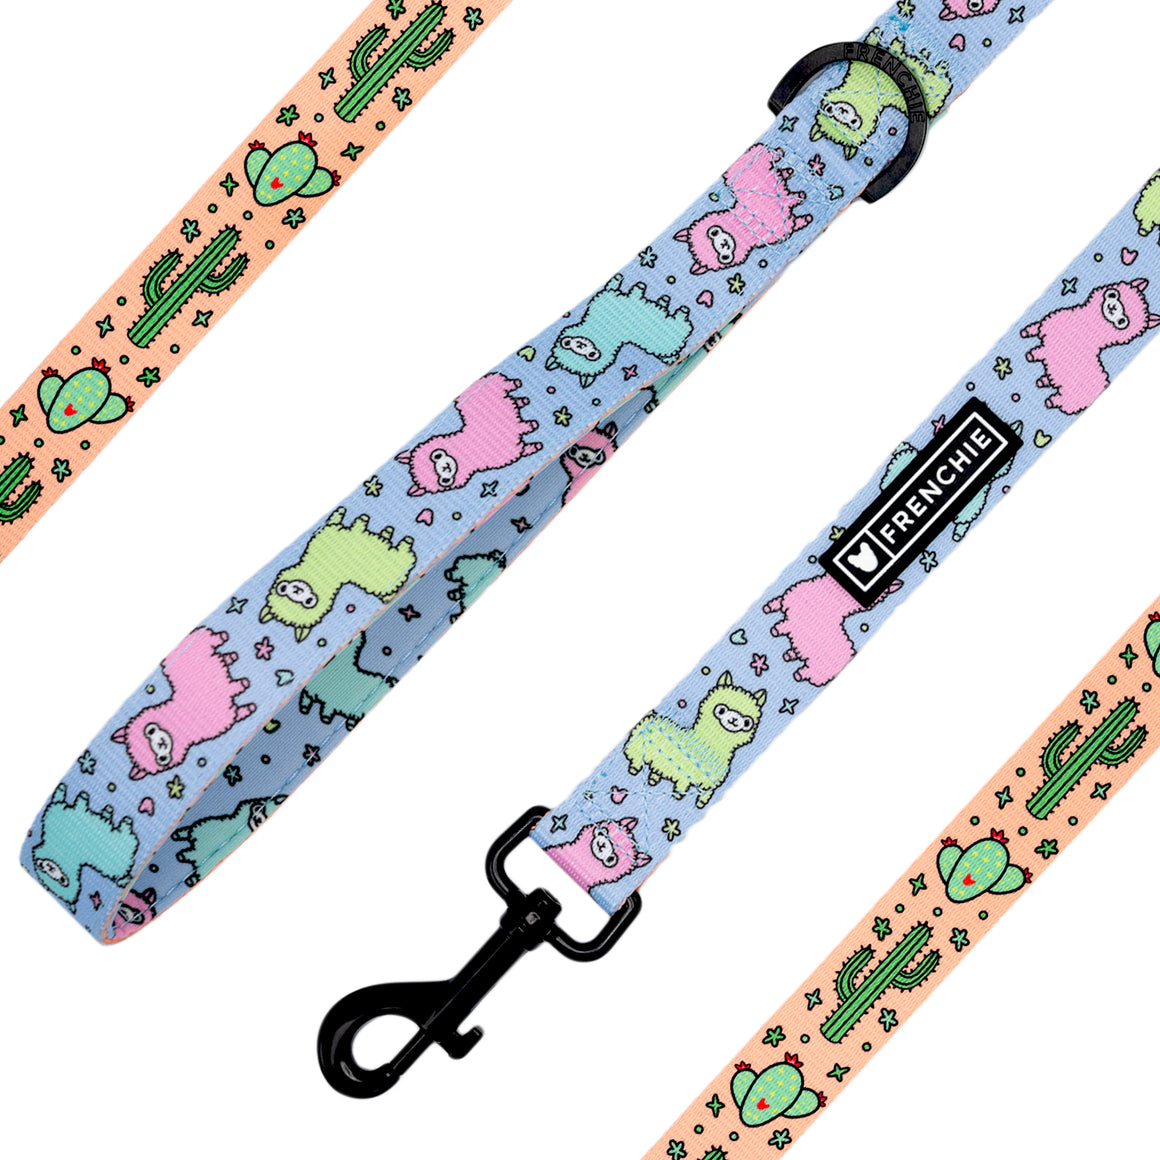 Frenchie Comfort Leash - No Prob-Llama